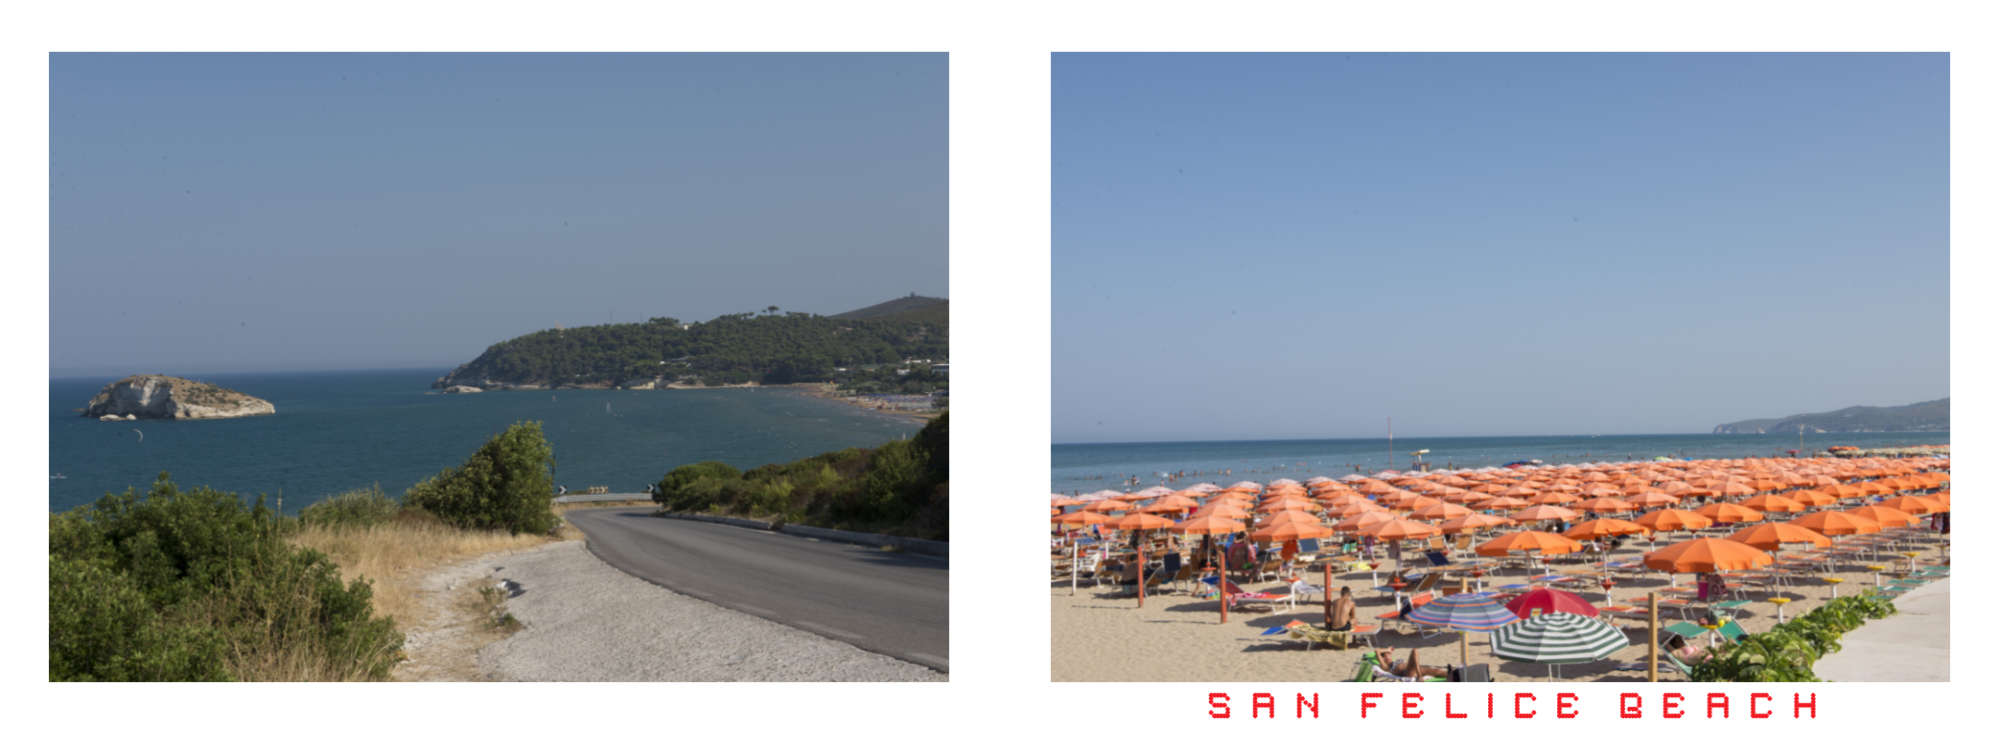 Puglia Album - Page 60: A small island off the coast – Page 61: San Felice Beach